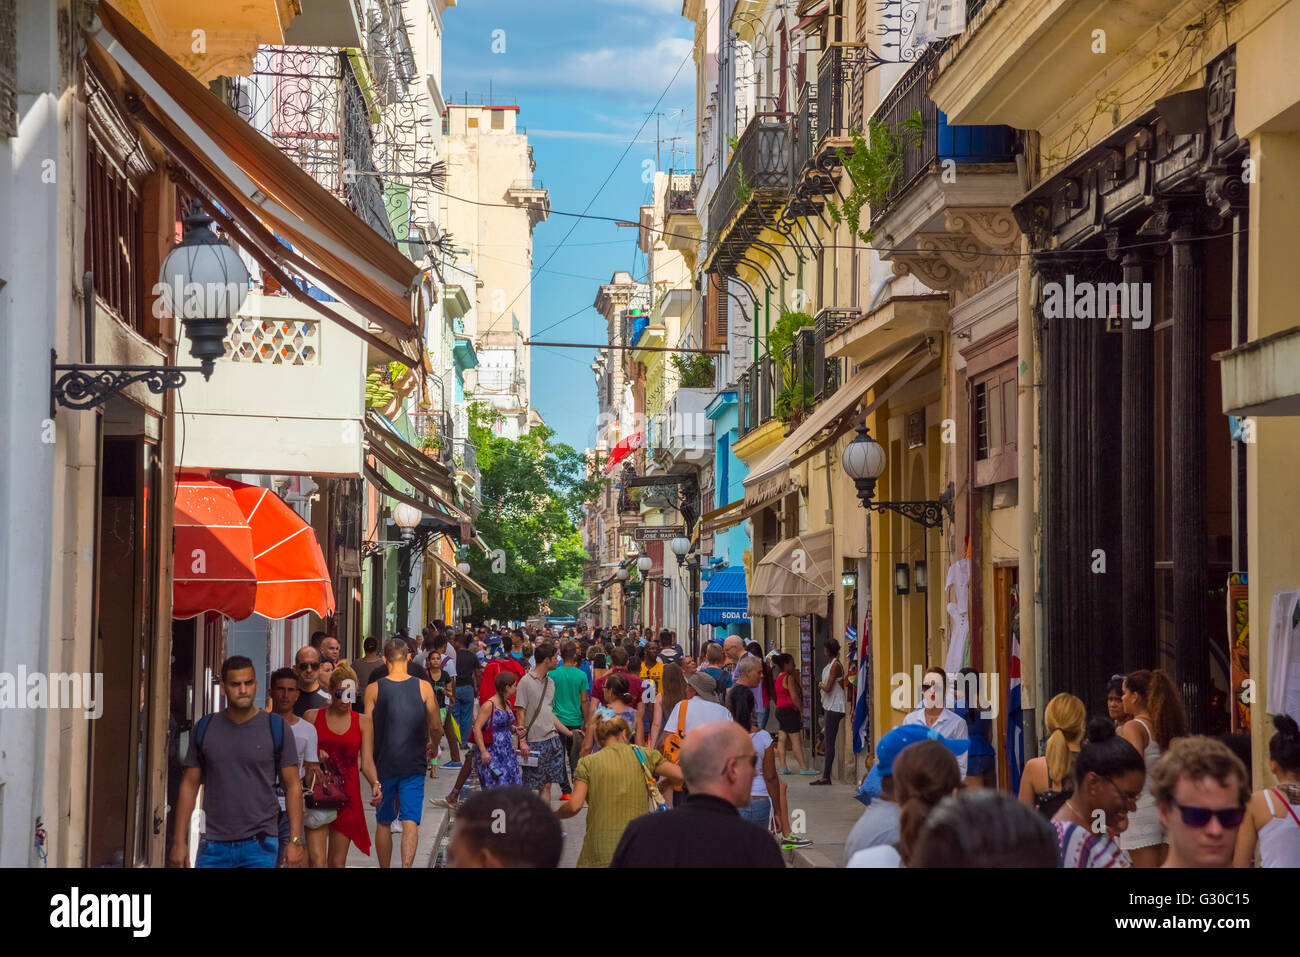 Obispo shopping street, La Habana Vieja (Old Havana), UNESCO World Heritage Site, Havana, Cuba, West Indies, Caribbean - Stock Image